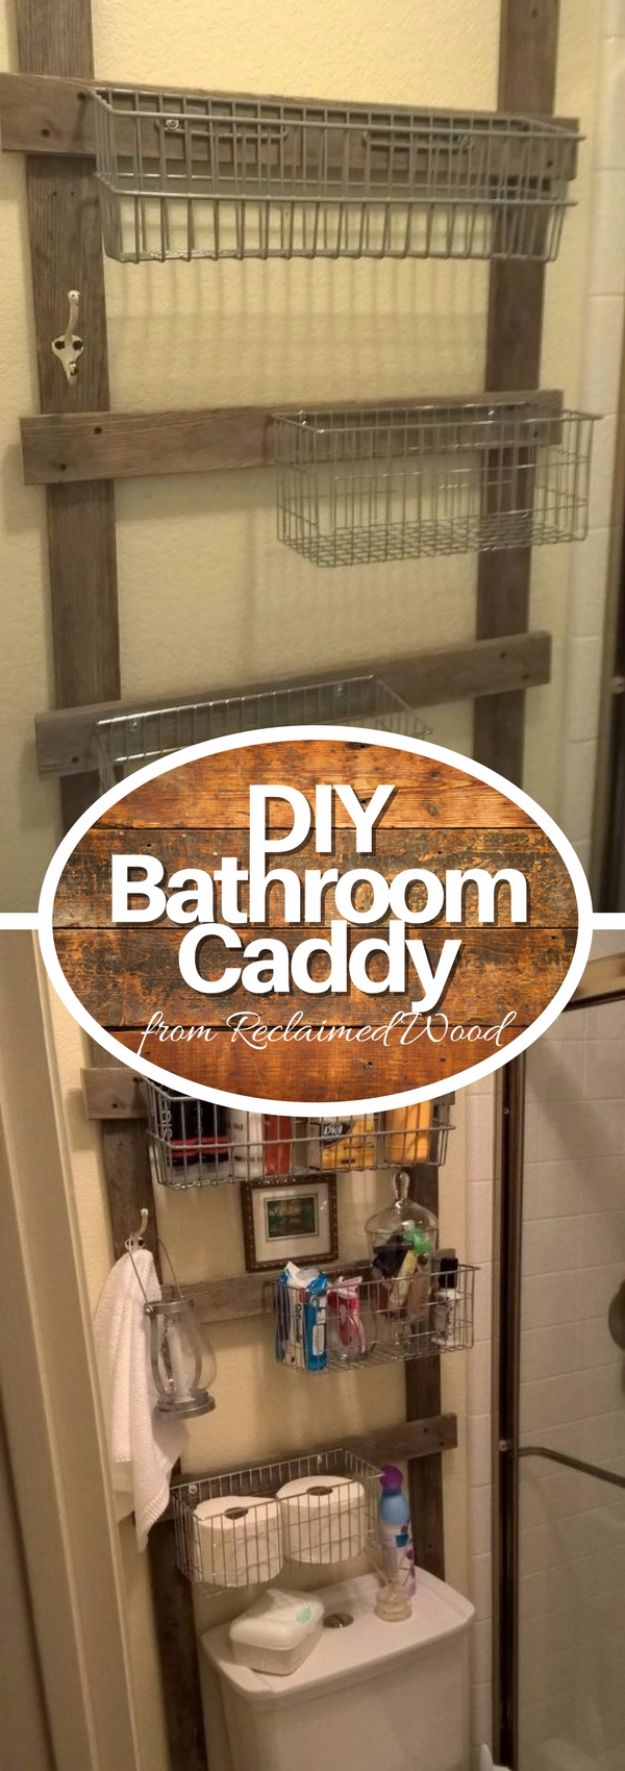 DIY Bathroom Storage Ideas - Reclaimed Bathroom Caddy - Best Solutions for Under Sink Organization, Countertop Jars and Boxes, Counter Caddy With Mason Jars, Over Toilet Ideas and Shelves, Easy Tips and Tricks for Small Spaces To Organize Bath Products http://diyjoy.com/diy-bathroom-storage-ideas